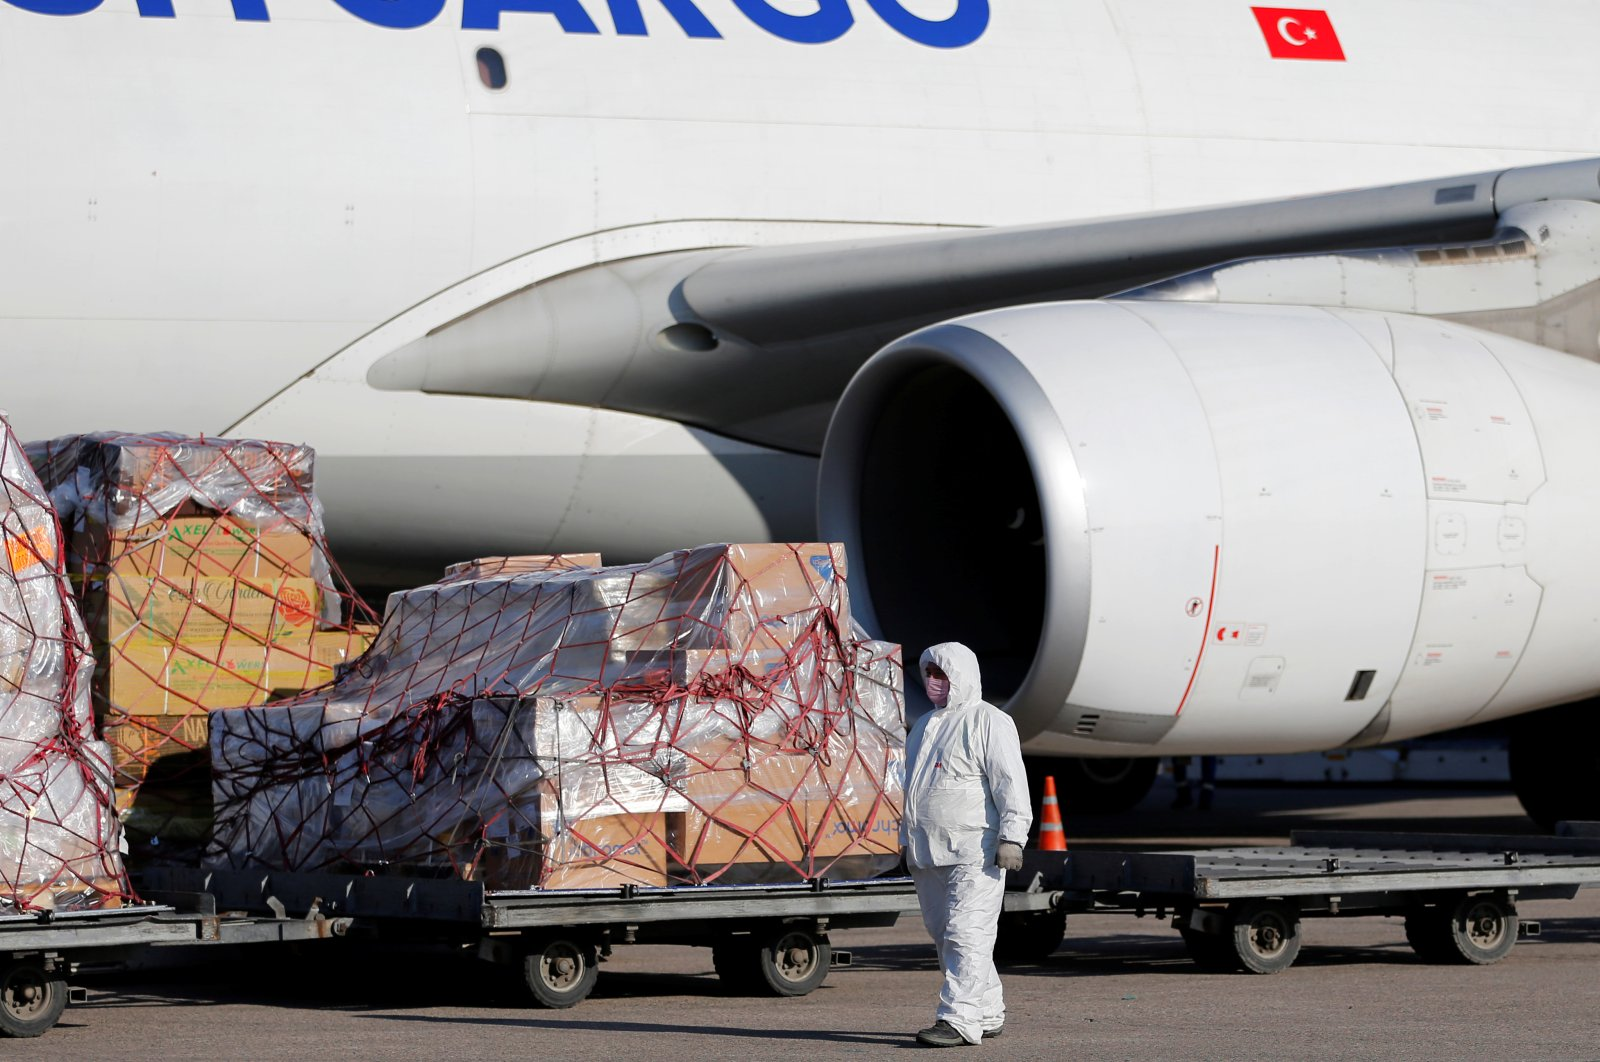 A worker in protective gear unloads a shipment of medical supplies from Turkey, Almaty International Airport, Kazakhstan, April 18, 2020. (Reuters Photo)